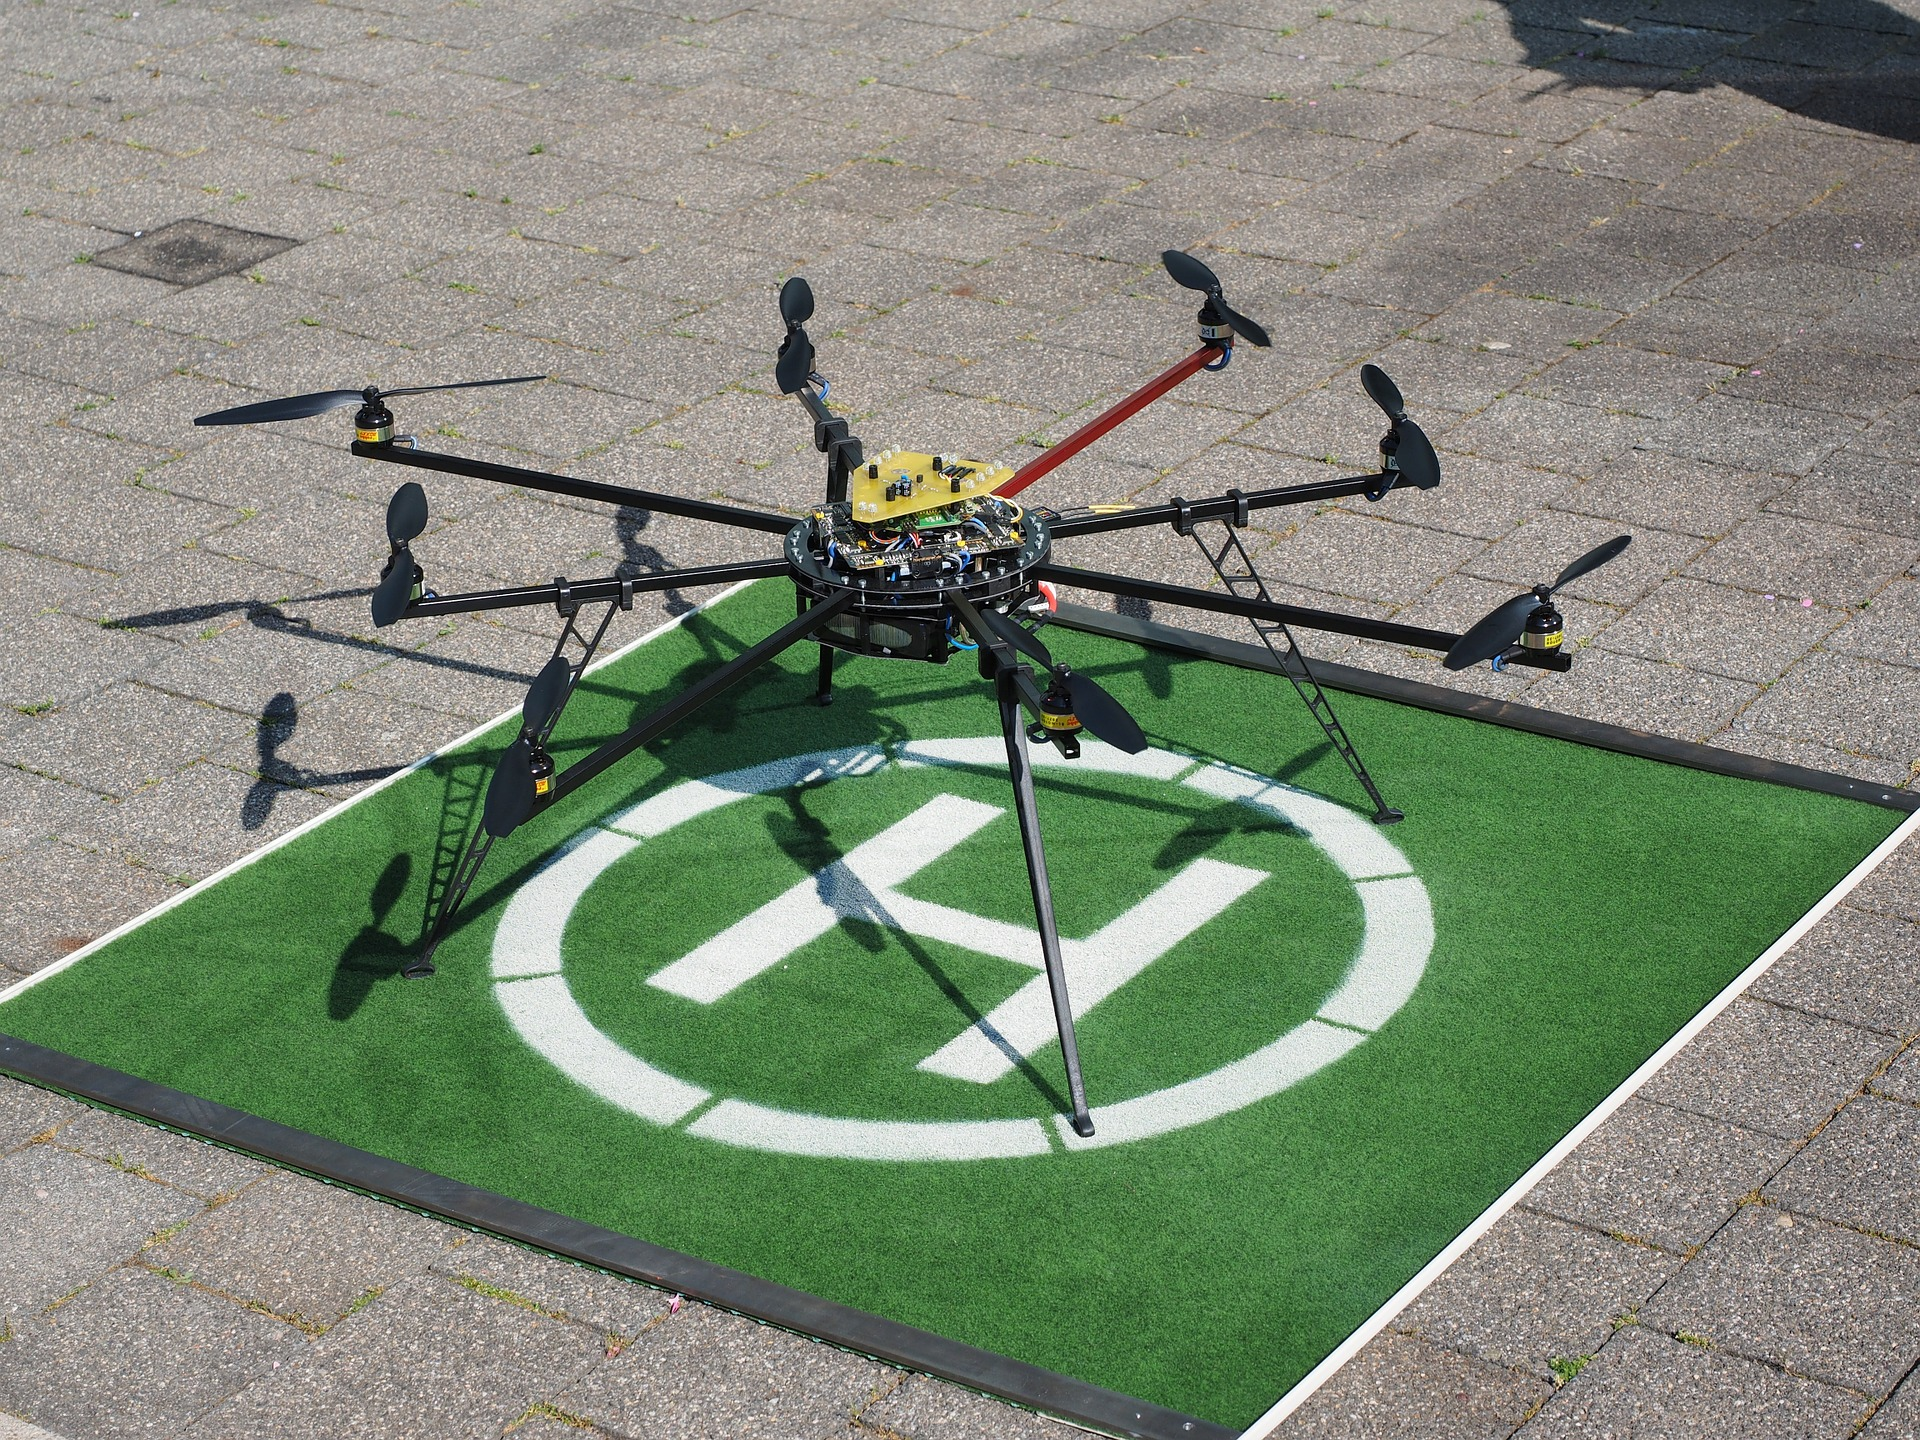 Qualcomm just fixed a major problem in Drone Landings